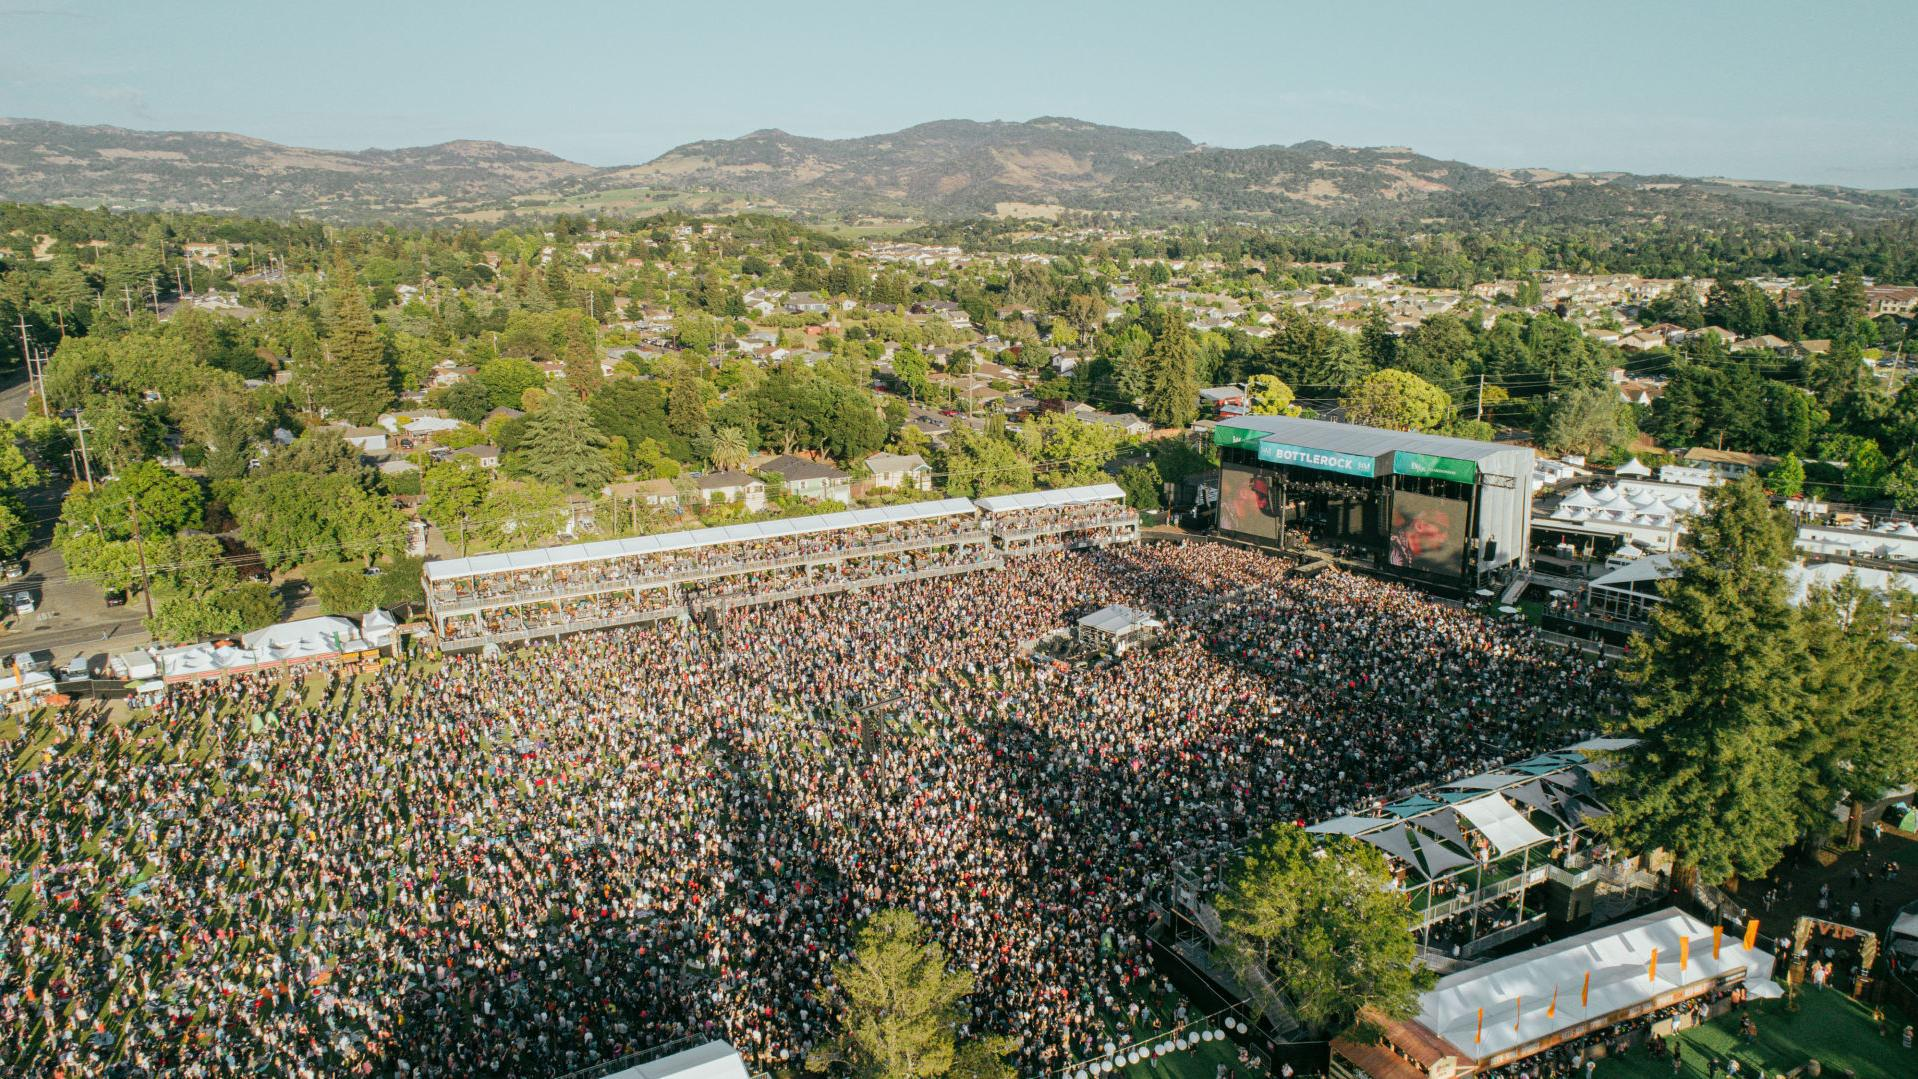 Napa S Bottlerock Remains Scheduled For May Amid Growing Coronavirus Uncertainty Local News Napavalleyregister Com